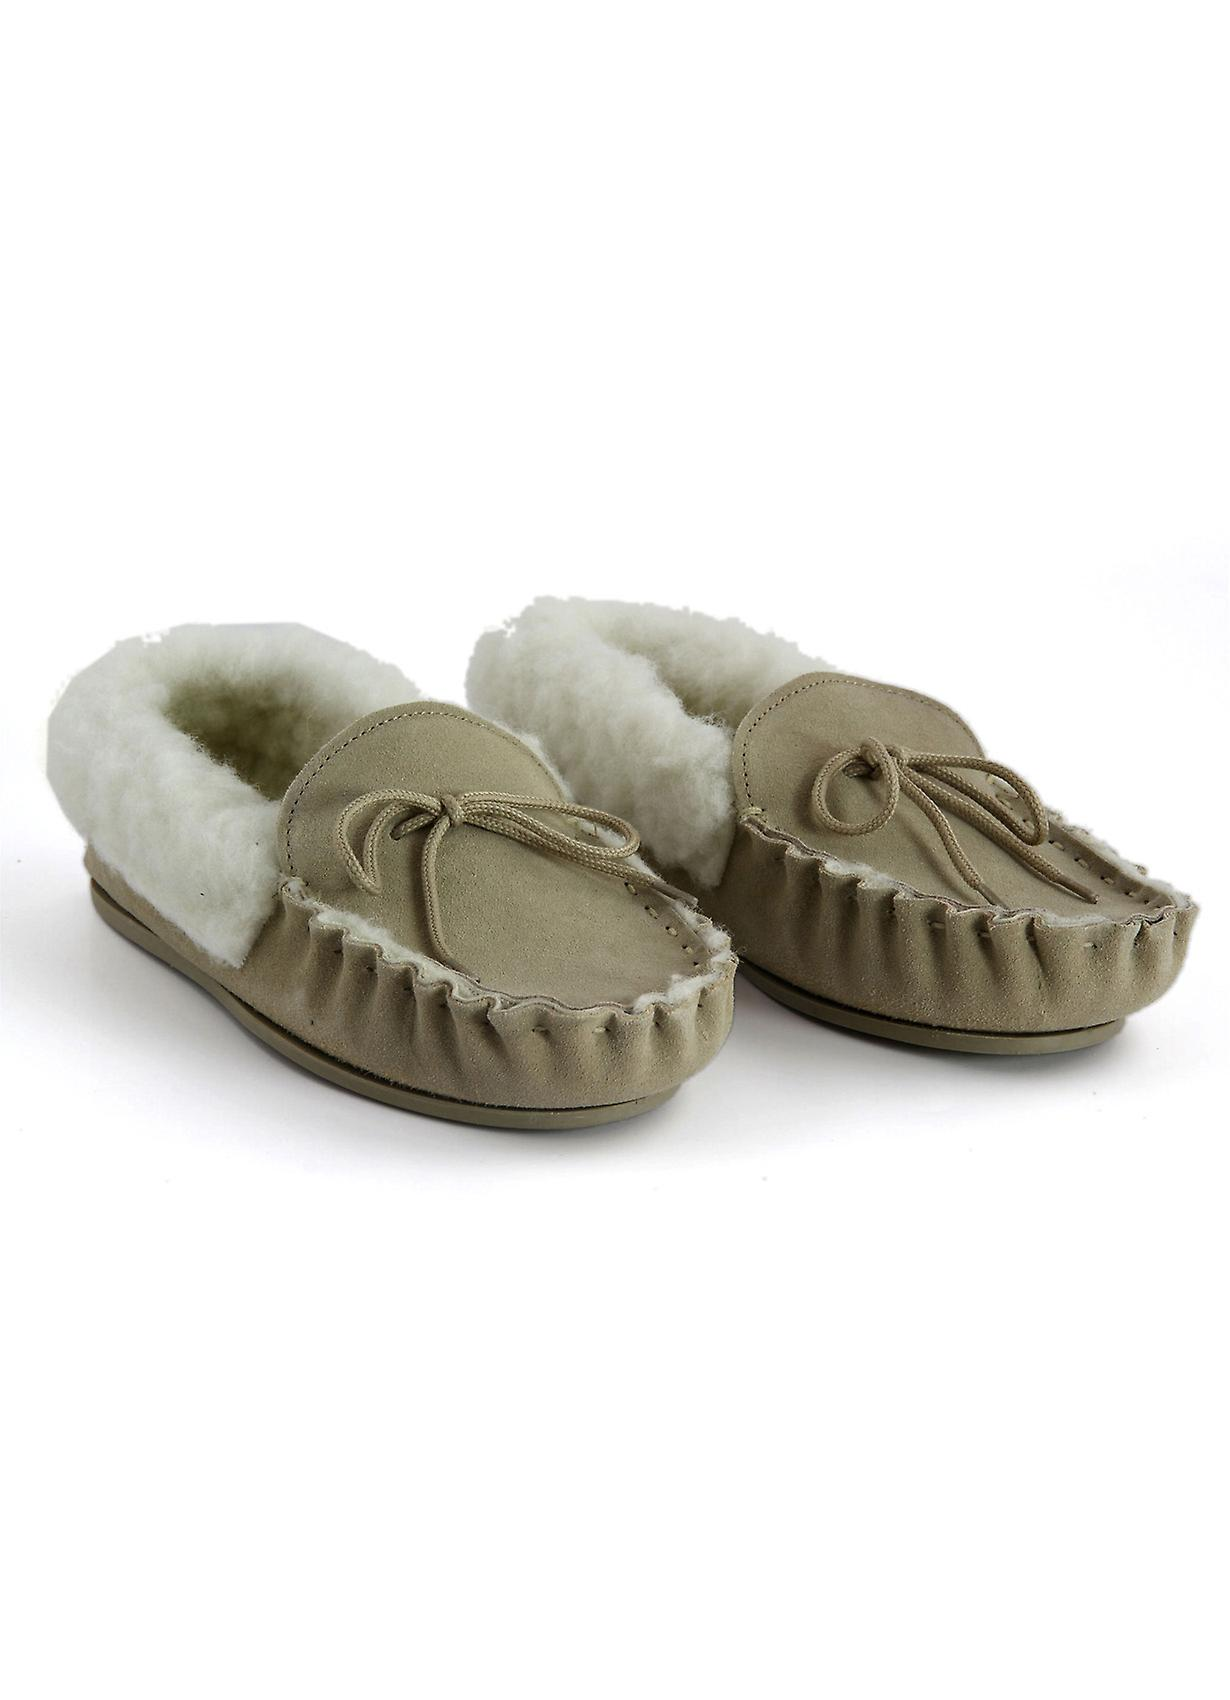 Women's Wool Lined Suede Moccasin Slippers with collar in Natural